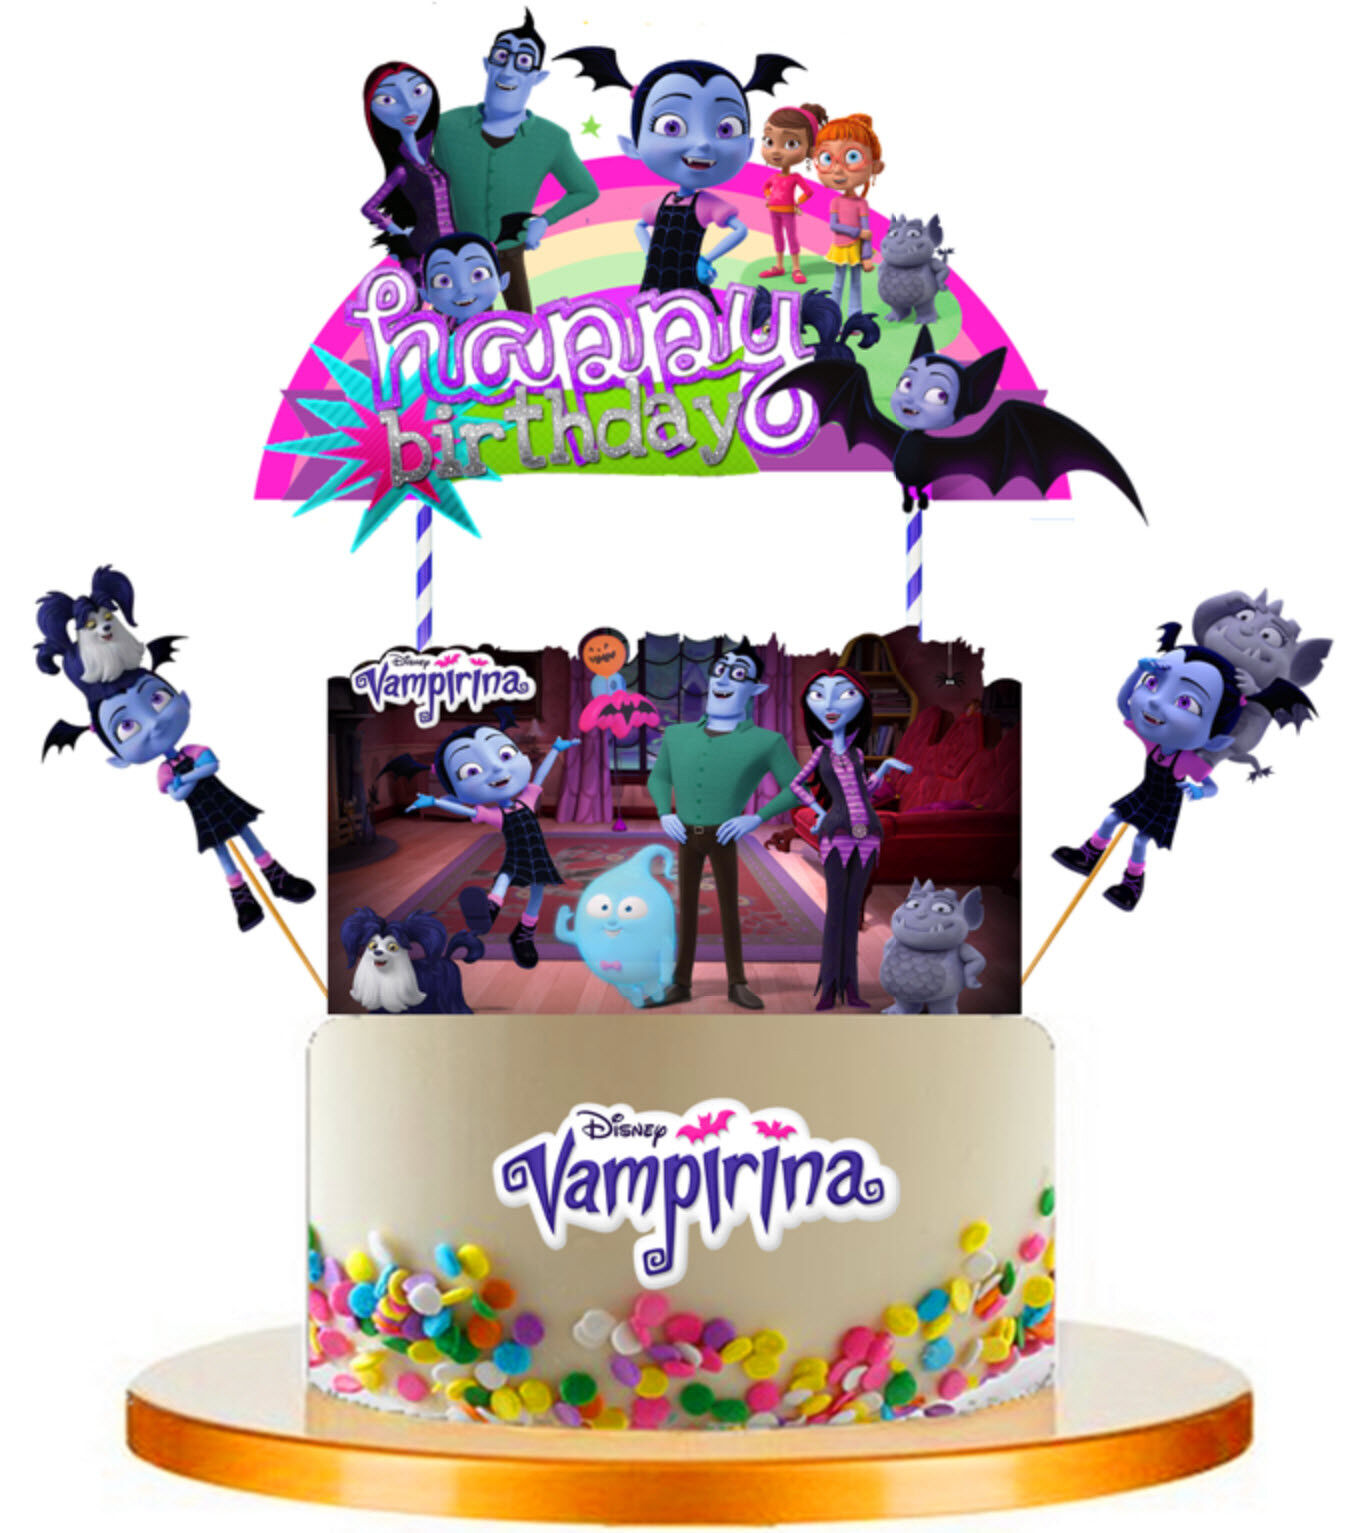 XL VAMPIRINA CUPCAKE CAKE TOPPER party favors balloon suppli